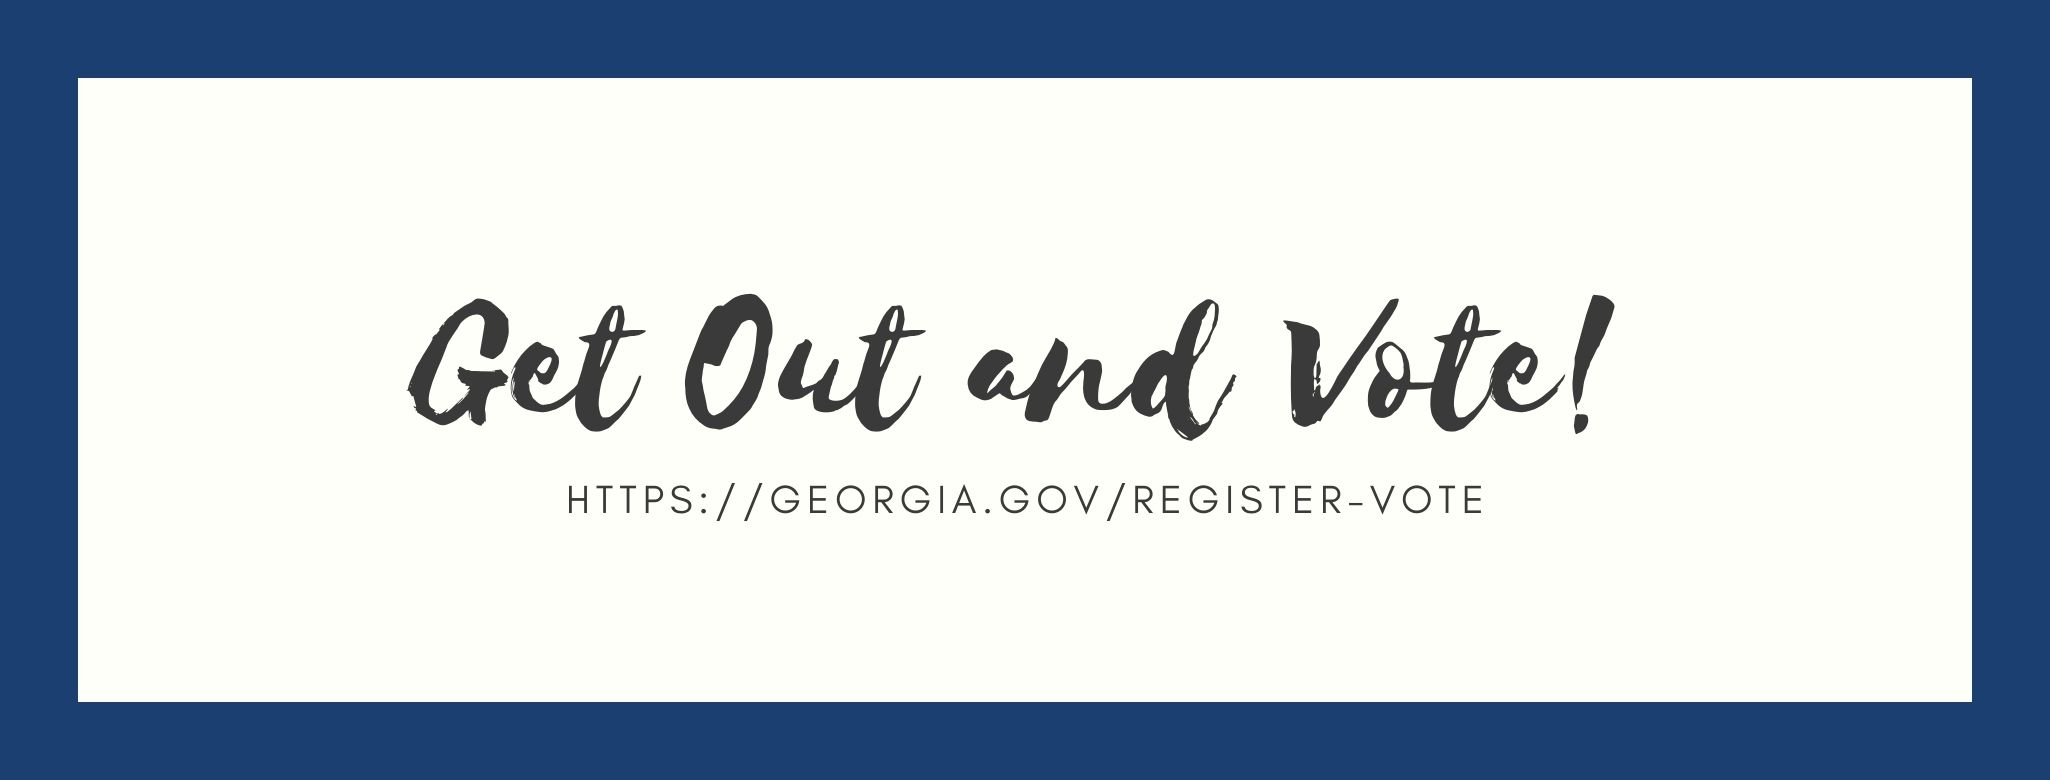 Get out and vote poster with link to the Georgia Voter Registration page.